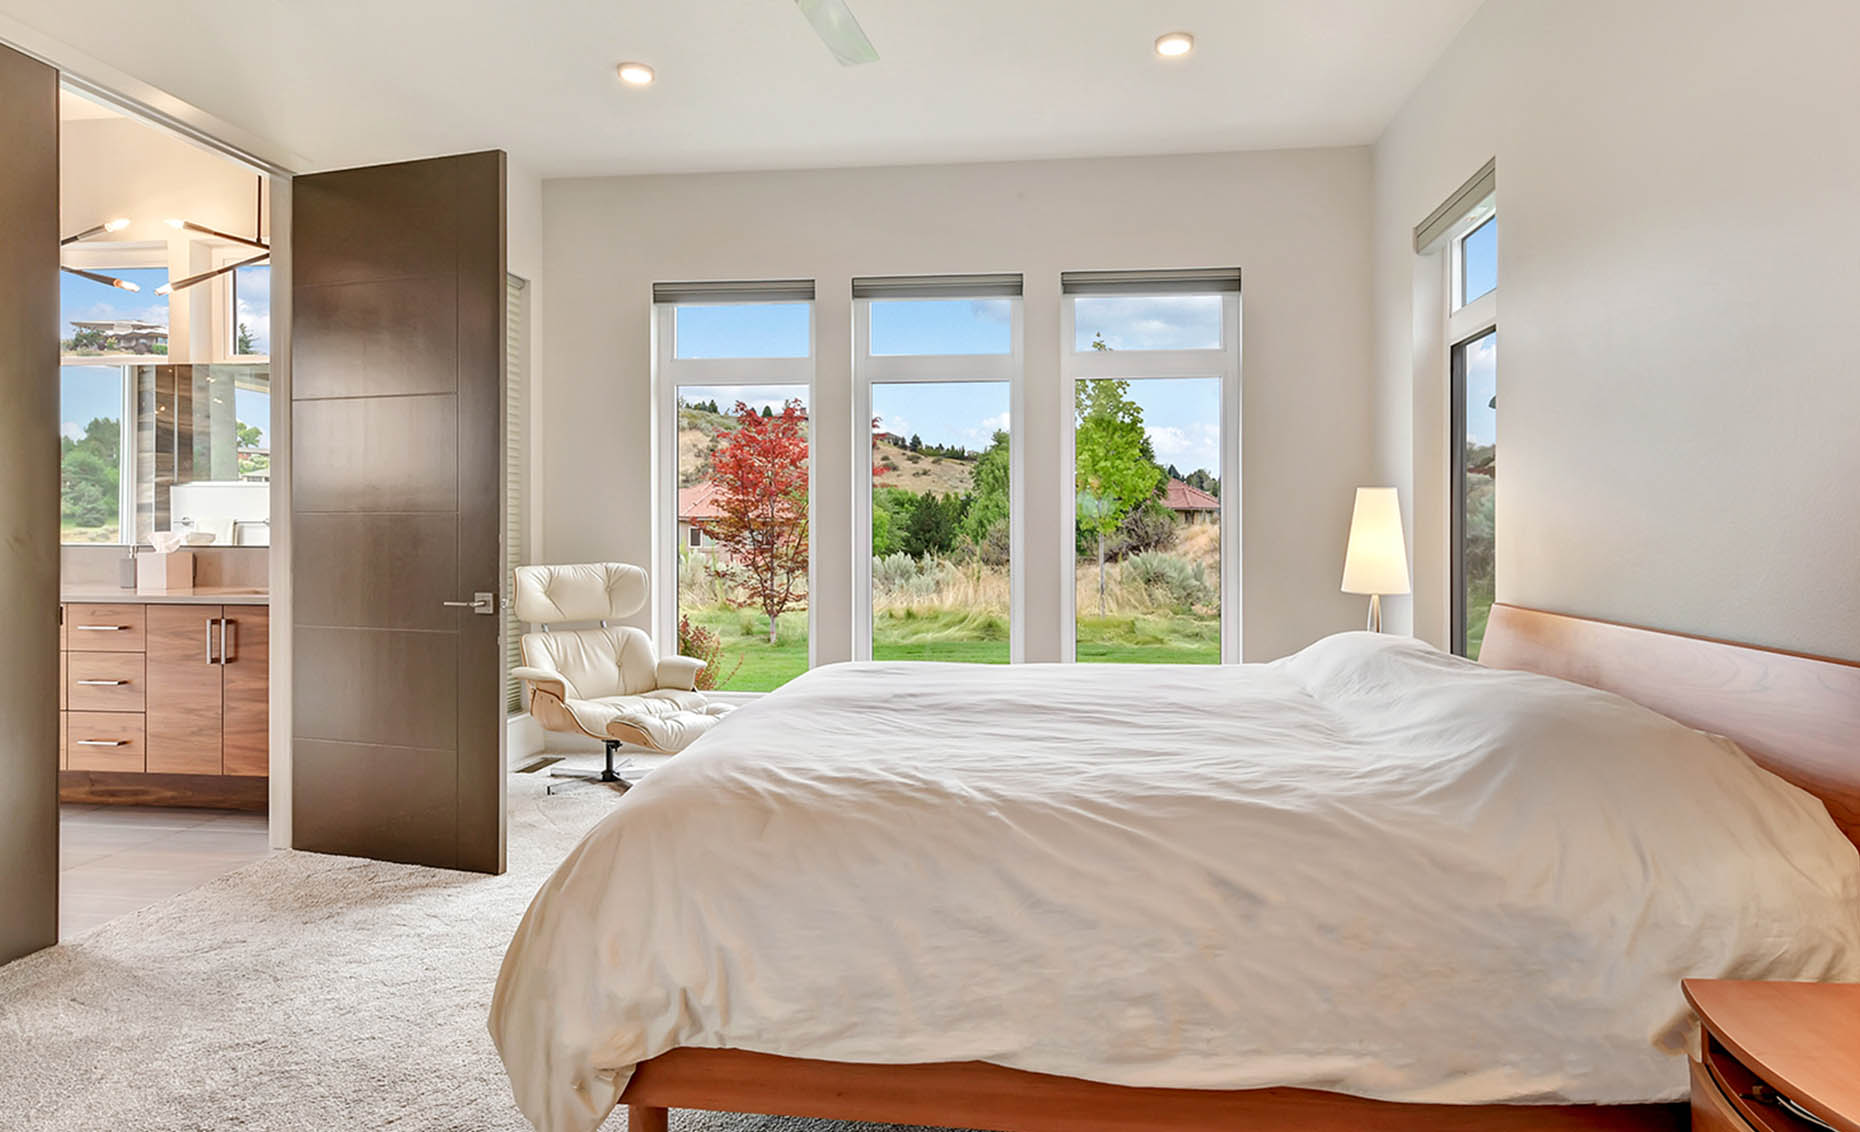 The Nature View Custom Home Bedroom with Beautiful View